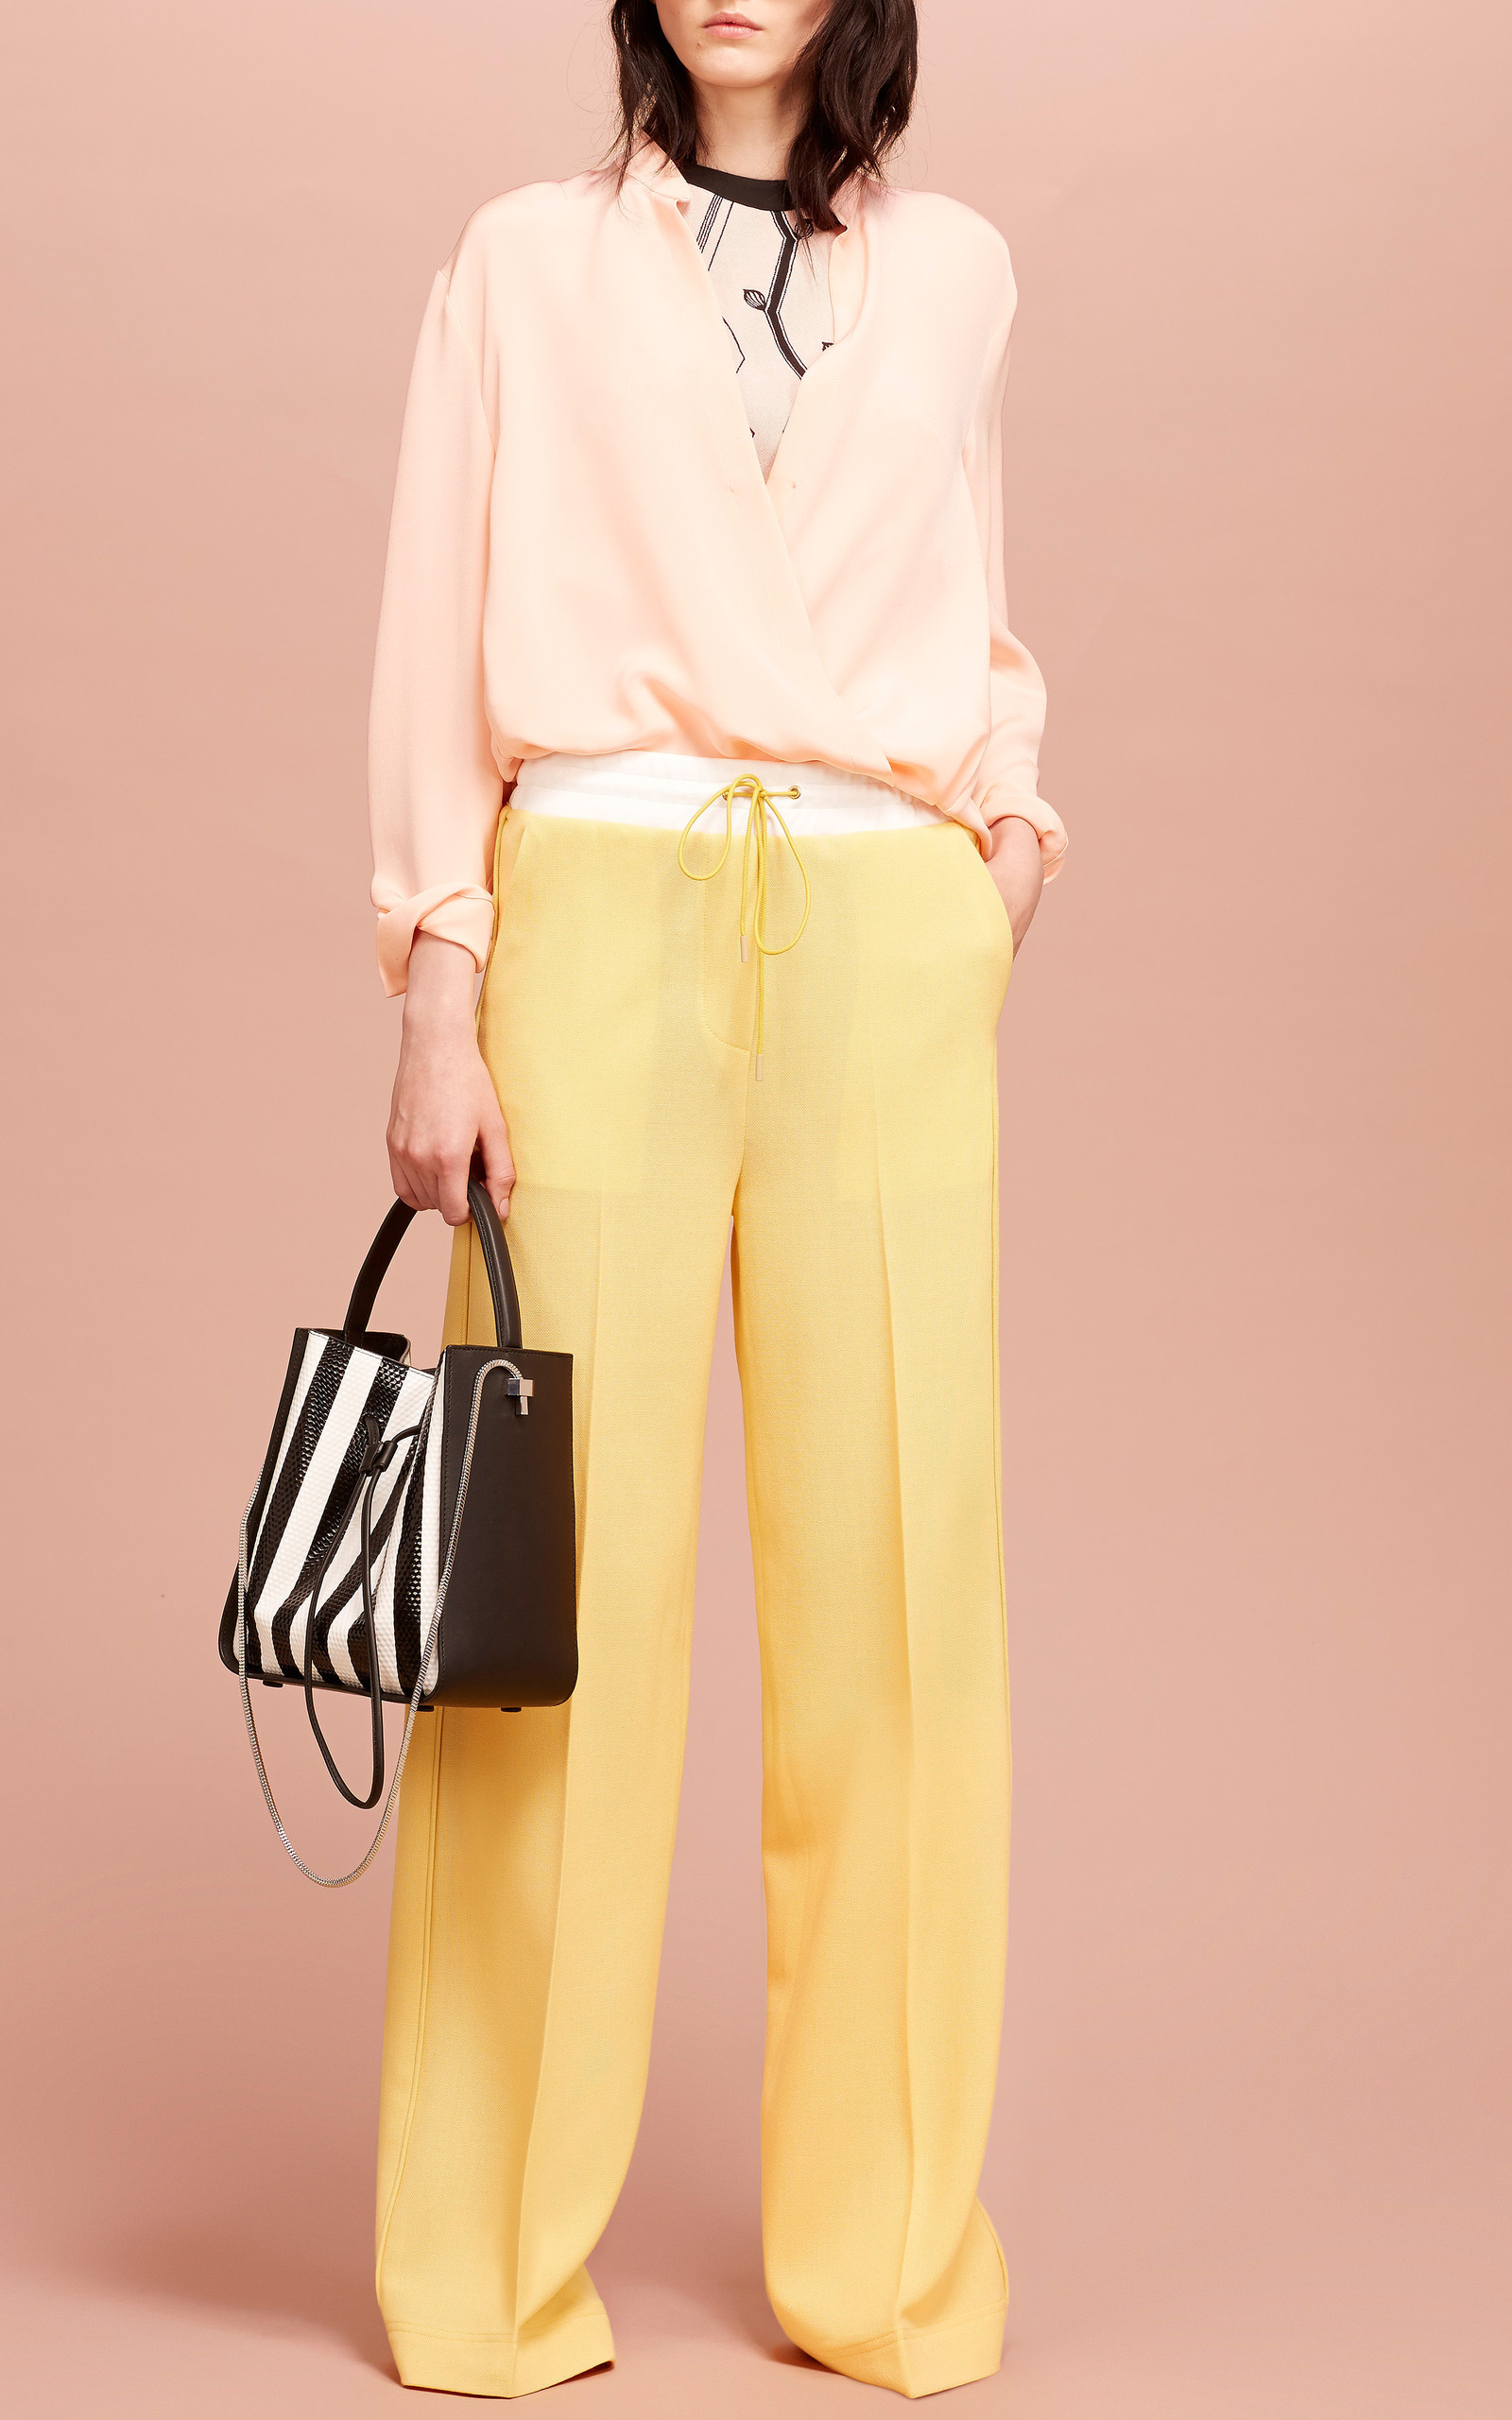 f56359f211a2e 3.1 Phillip LimSoftly Draped Blouse With Tucked In Collar In Peach Puff.  CLOSE. Loading. Loading. Loading